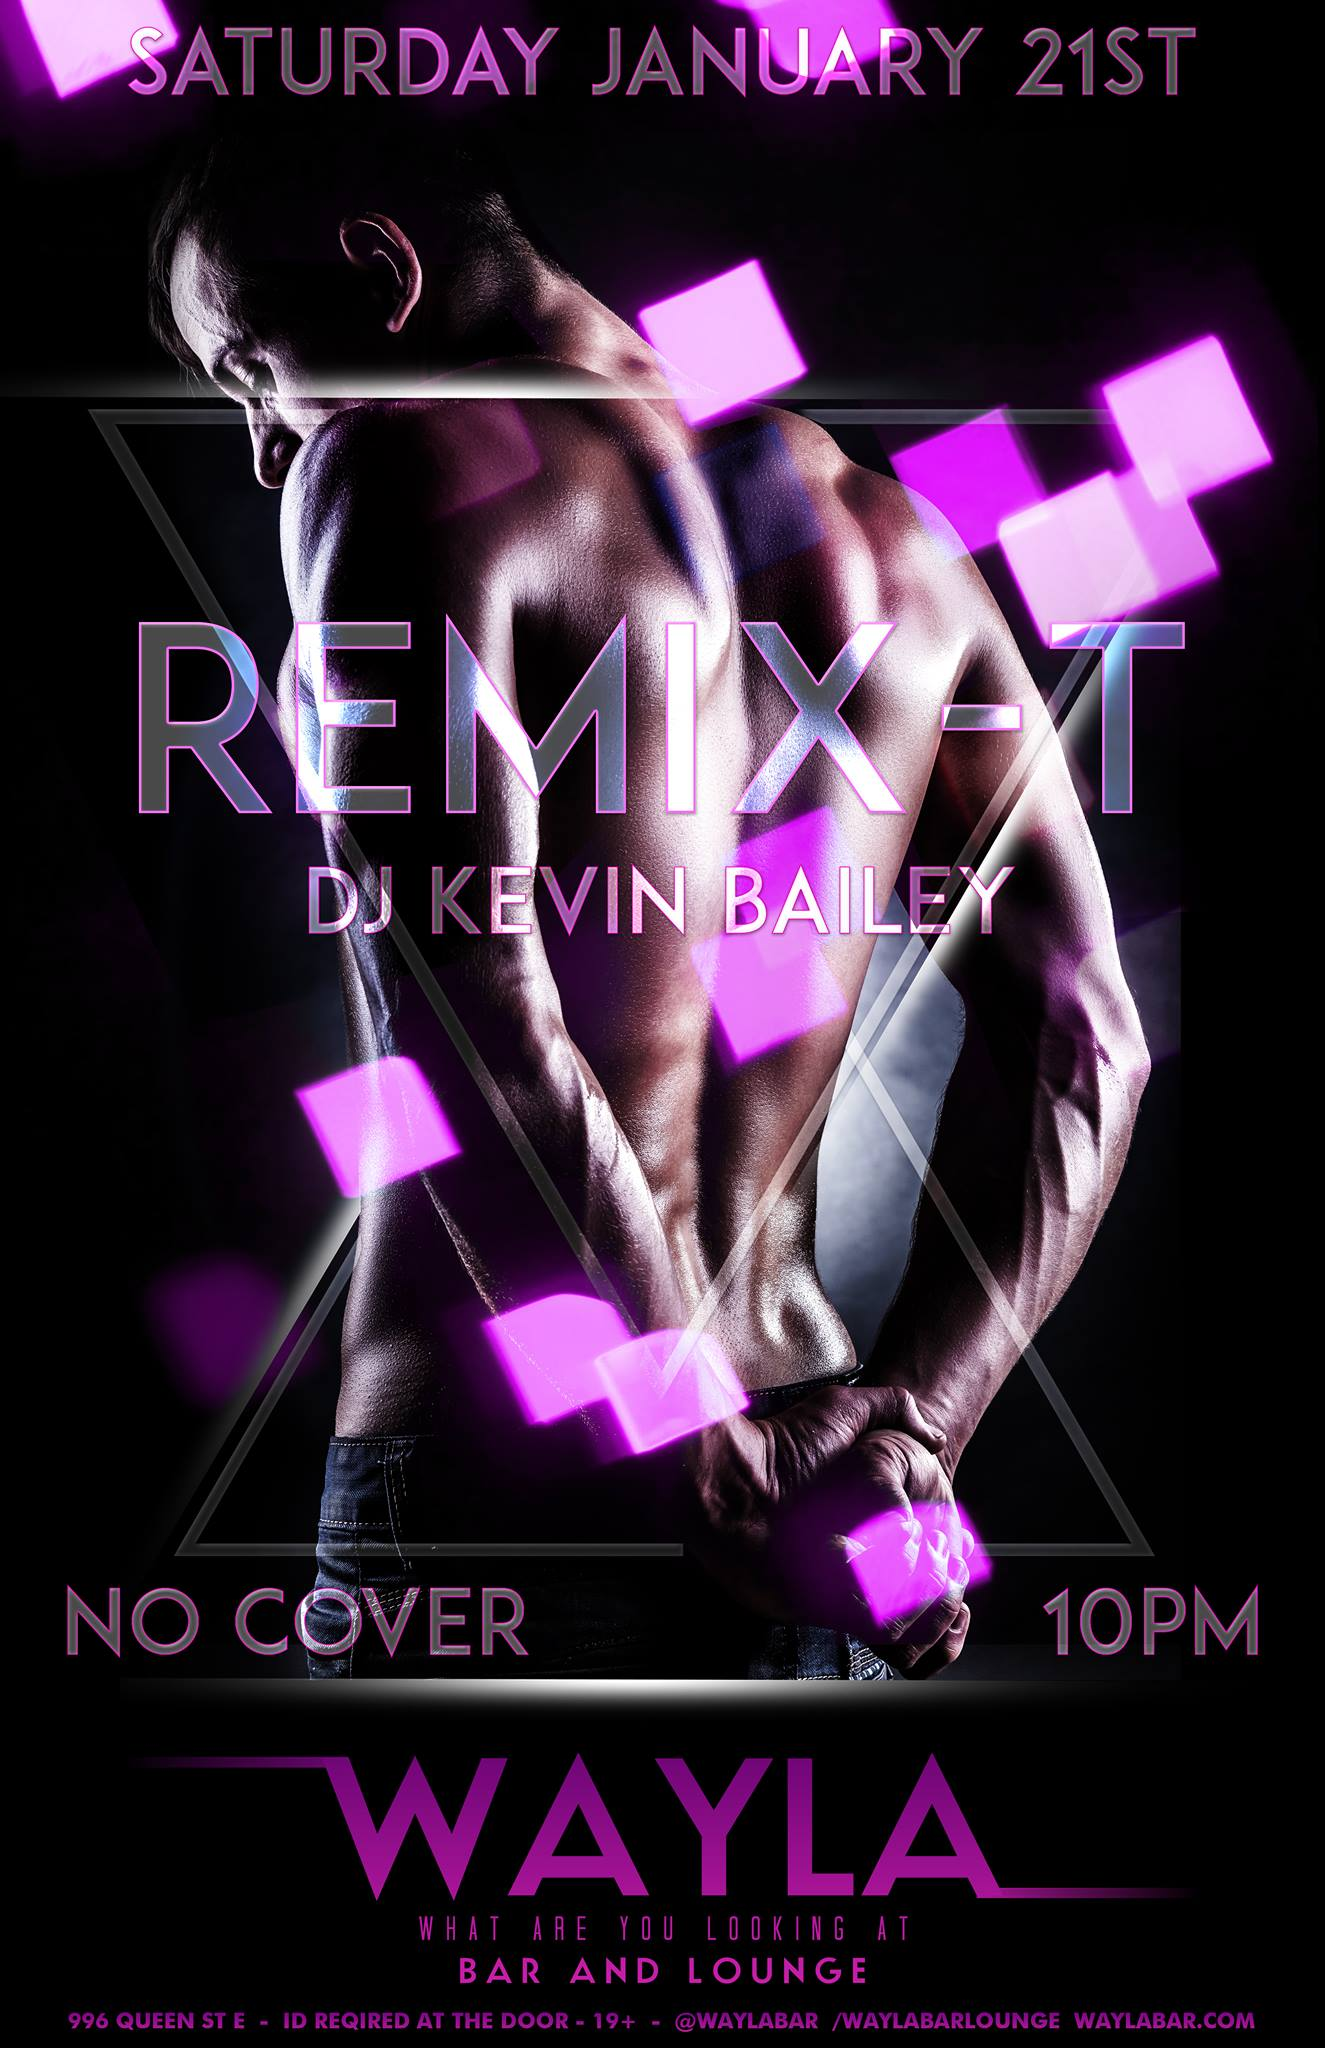 TORONTO LEGEND KEVIN BAILEY IS BACK AT WAYLA AND PLAYING THE BEST TOP40 AND CLASSIC REMIXES.... REMIX-T 10PM NO COVER